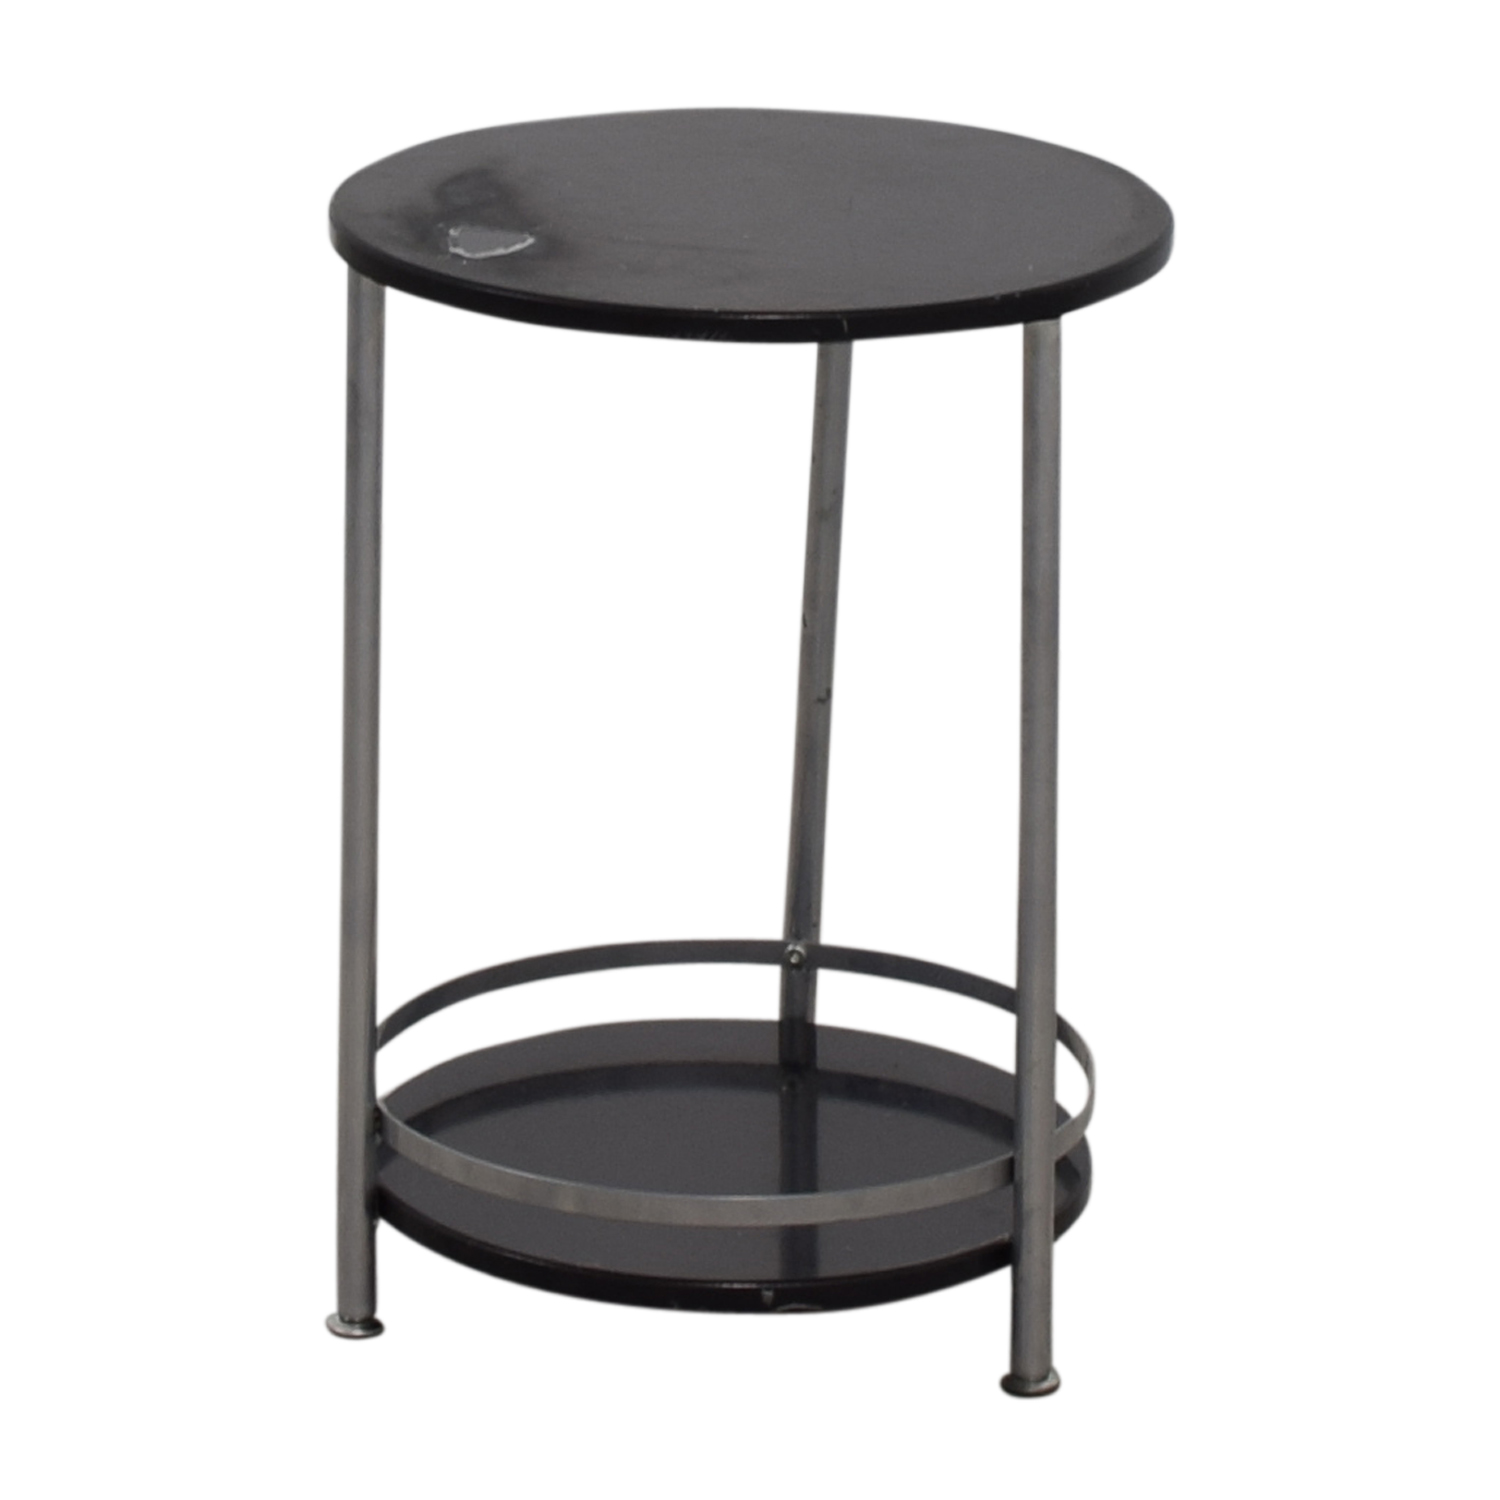 66 off round black and chrome end table tables for Black round end table